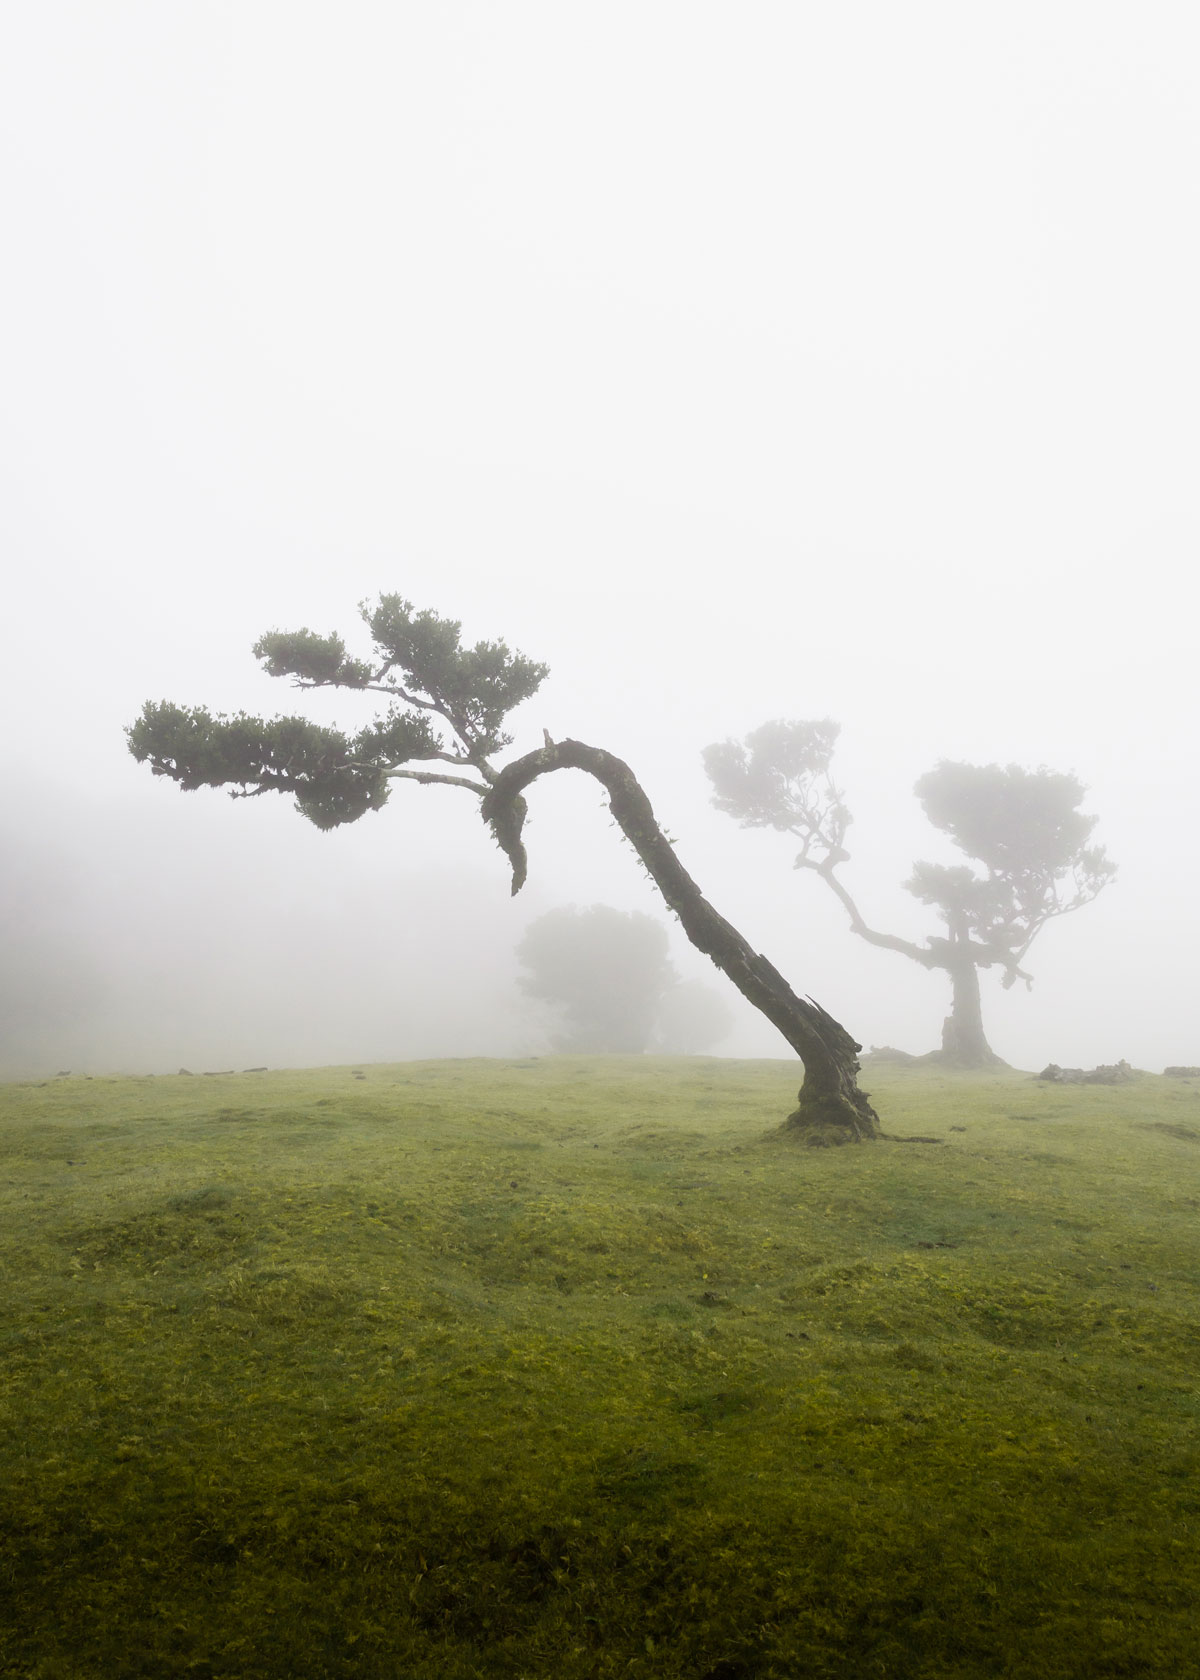 Fanal Madeira: The ancient Laurisilva forest